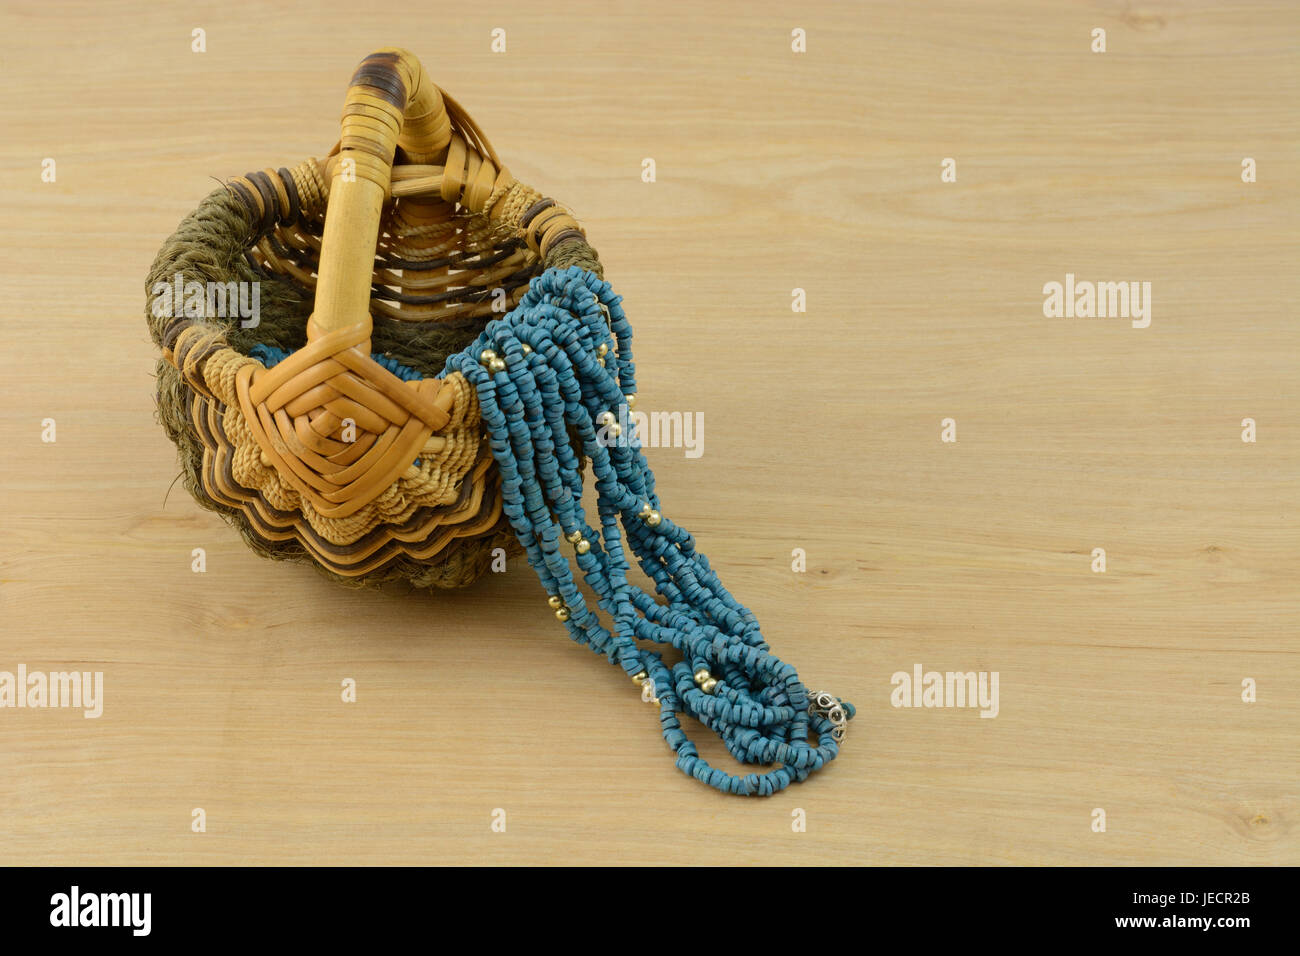 Blue necklace for work draped over handwoven wooden basket at end of day when changing from work clothes to informal - Stock Image